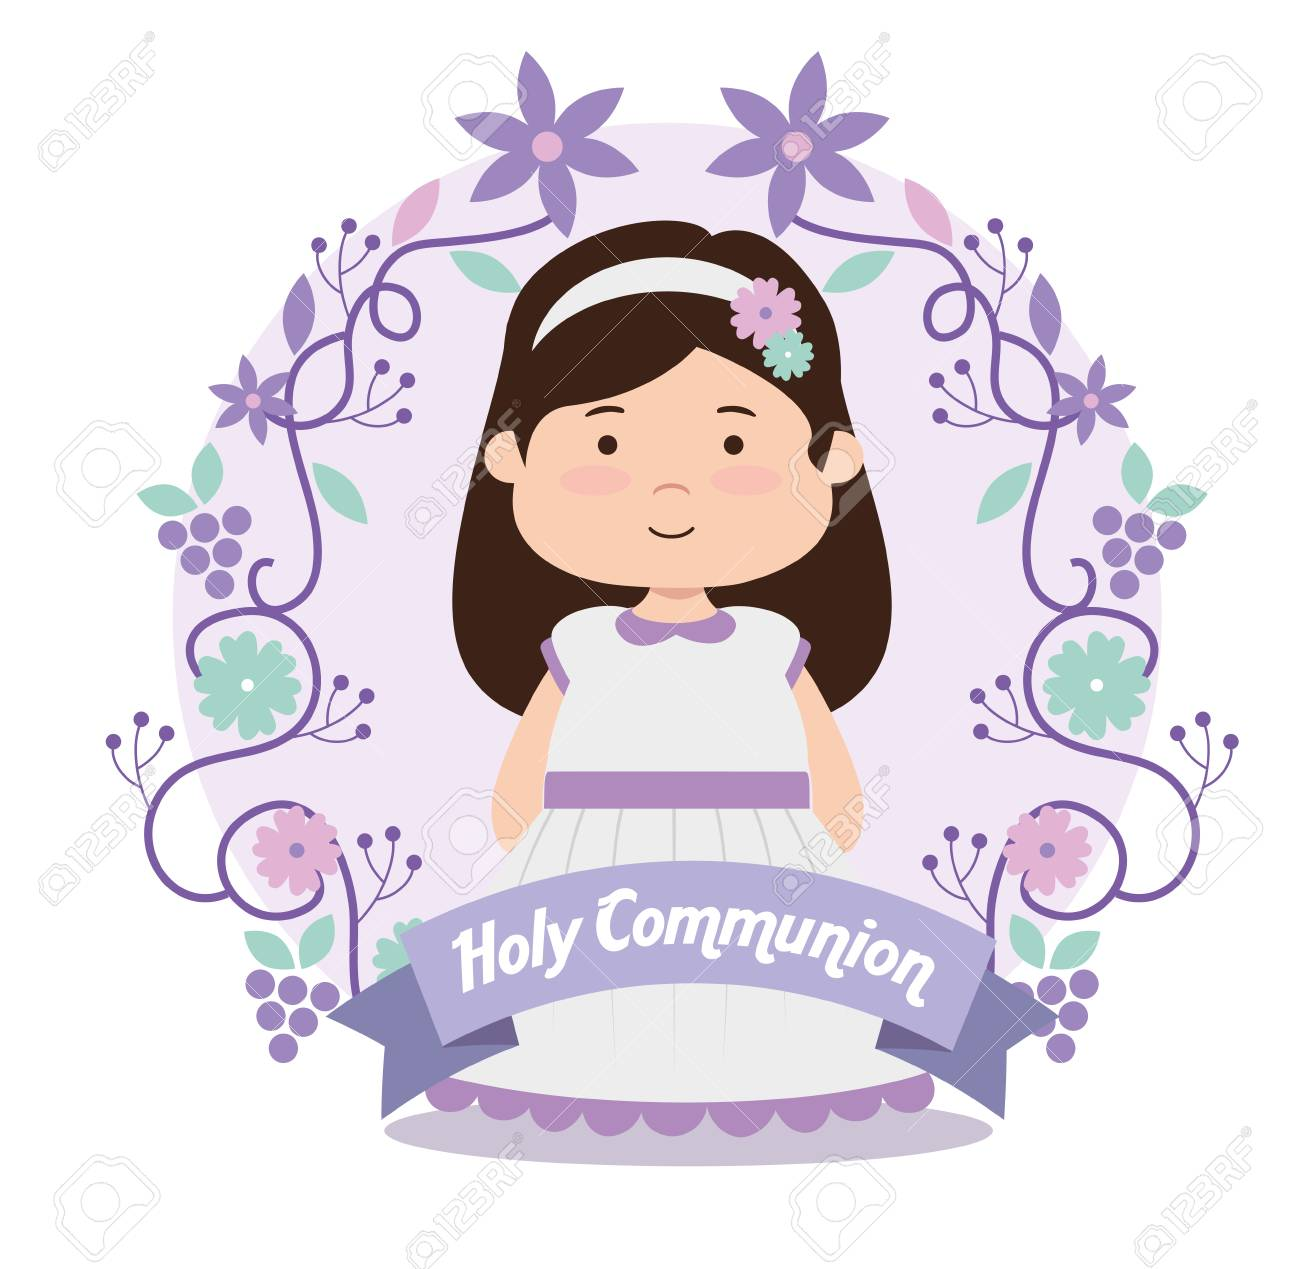 A girl with dress and ribbon to first communion vector illustration - 119808452